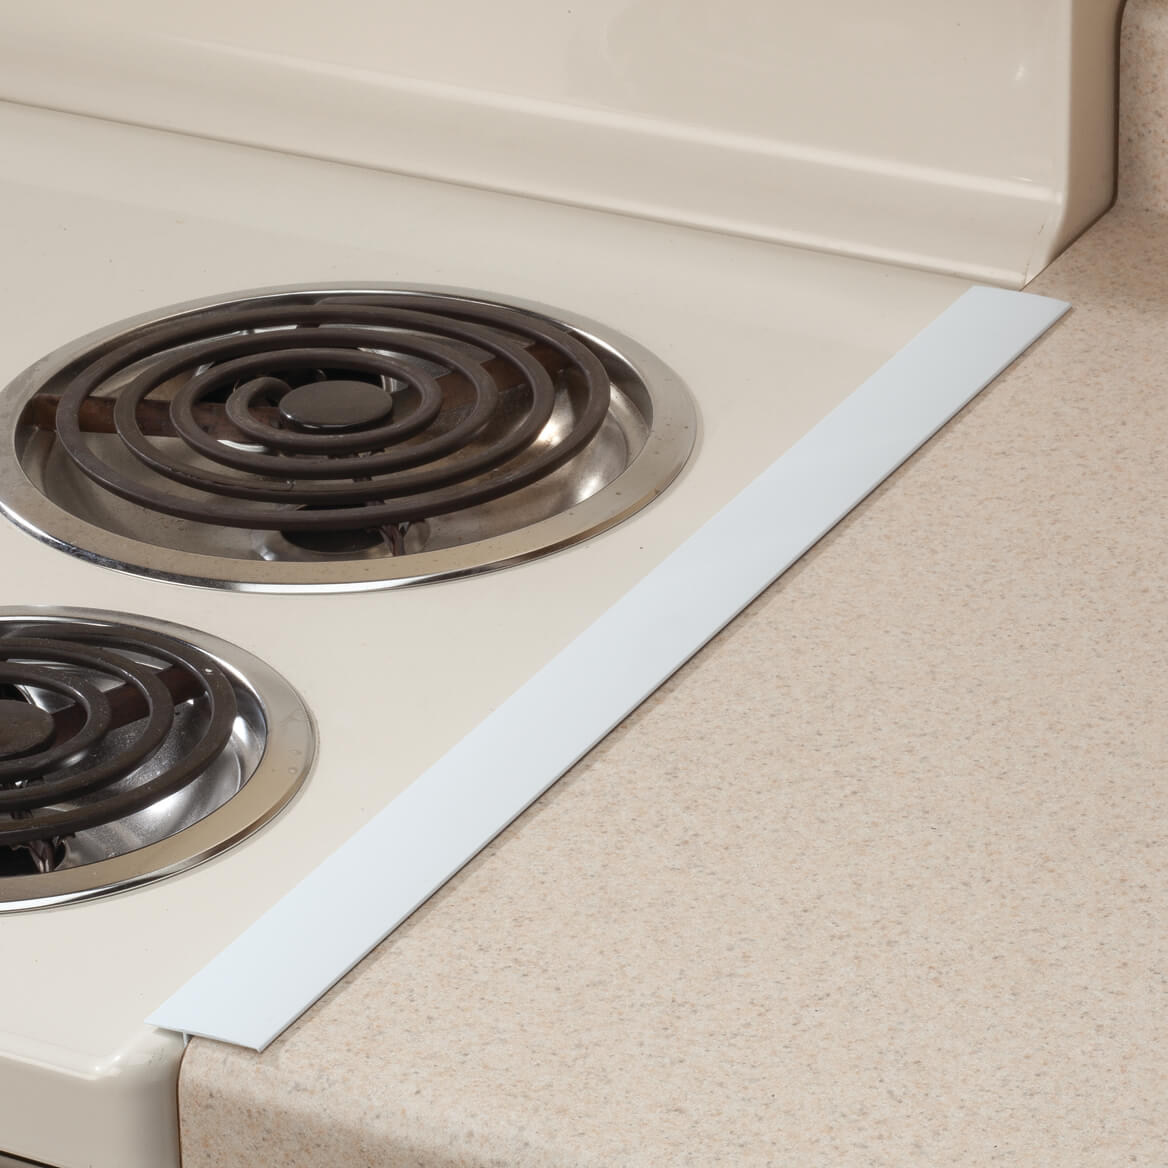 Gap Between Stove And Countertop Stove Counter Gap Cover Stove Counter Gap Filler